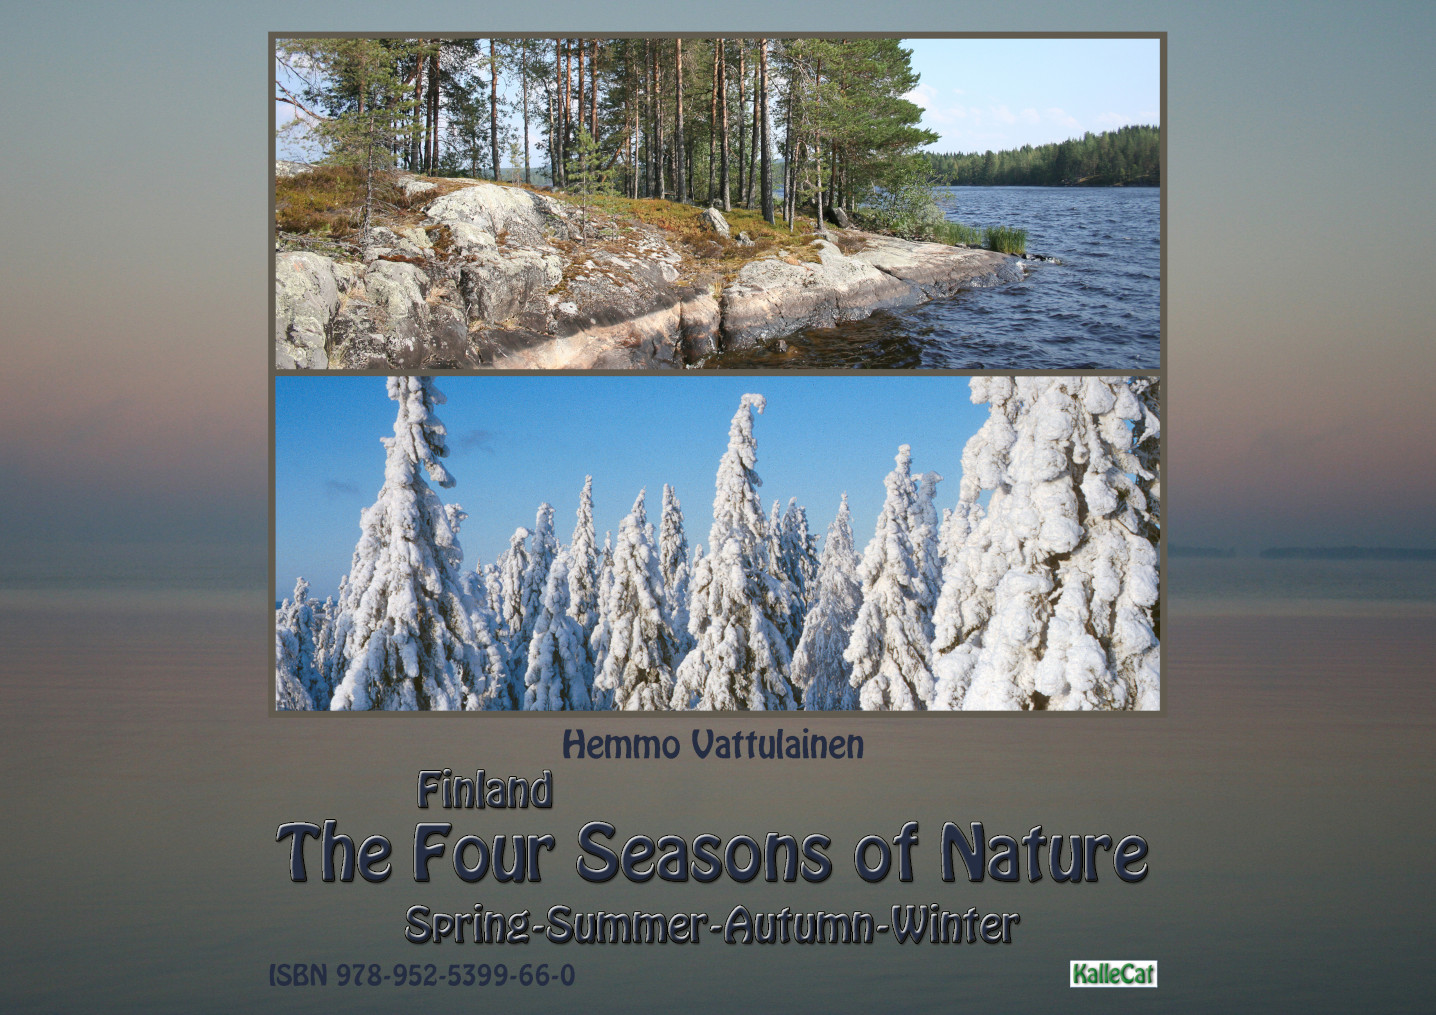 e Nature Photo book from Finland